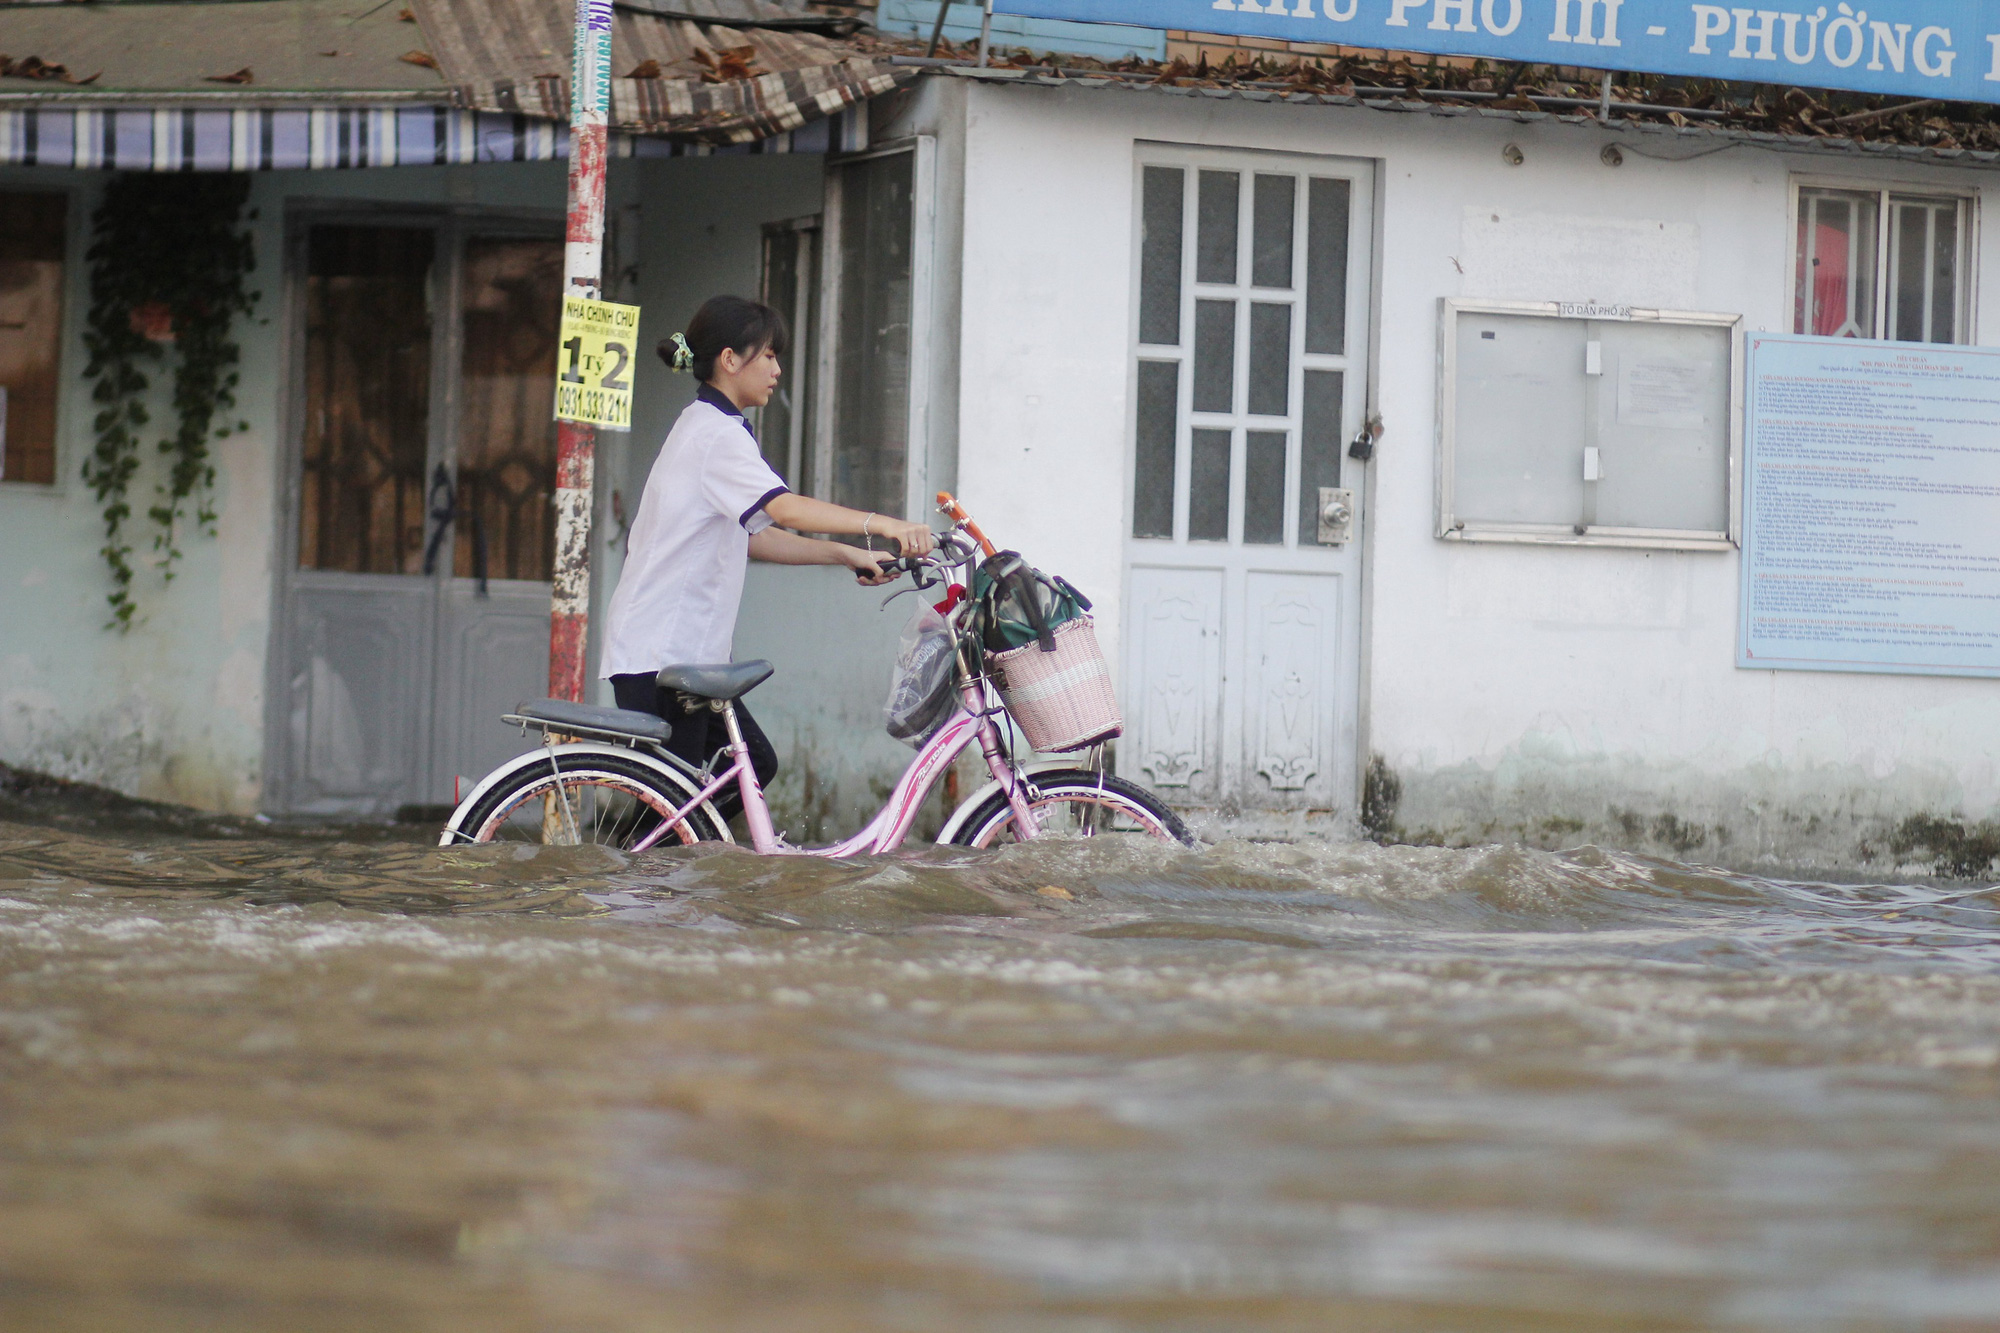 A student pushes her bicycle along a flooded street in Ho Chi Minh City, November 16, 2020. Photo: Kim Ut / Tuoi Tre